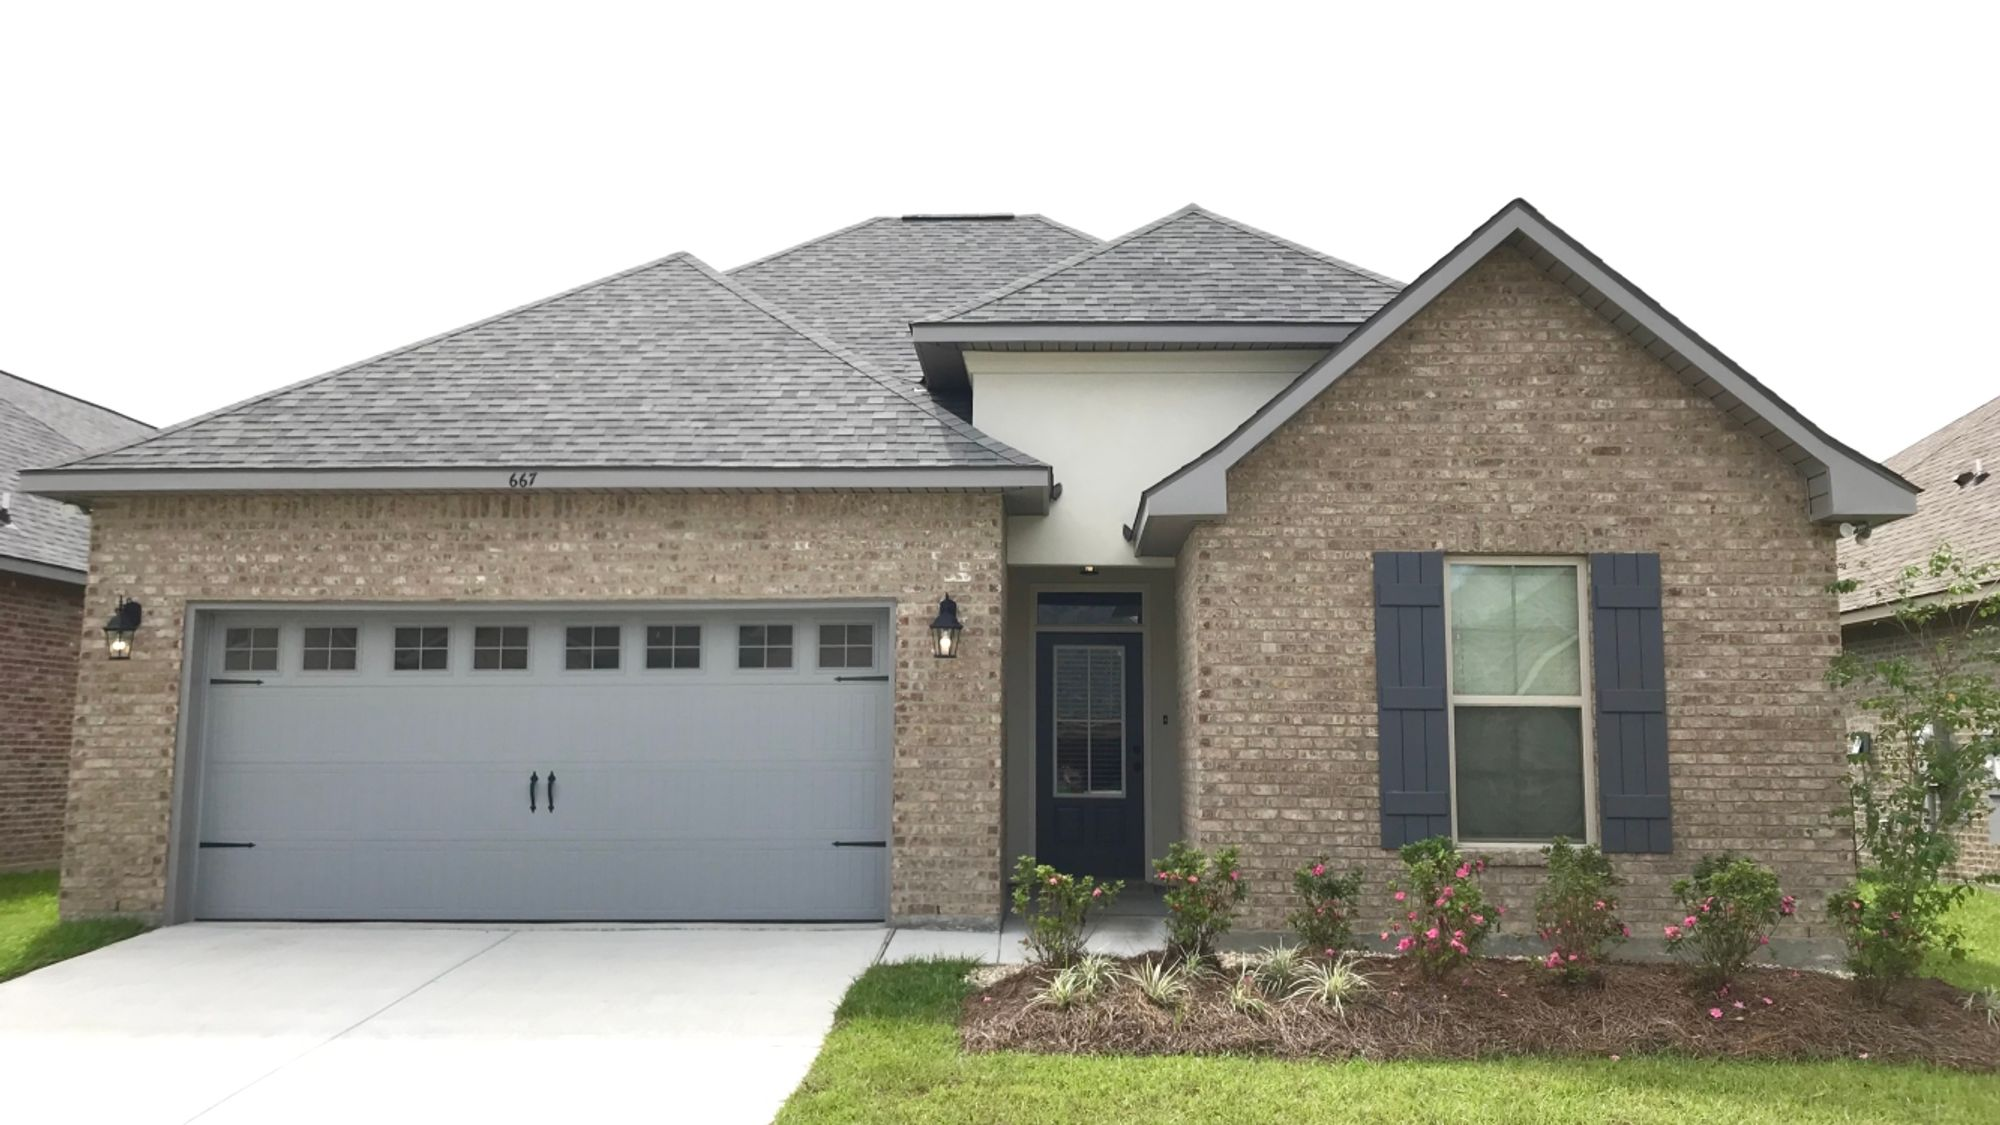 Front View - The Reserve at Conway Community - DSLD Homes - Gonzales